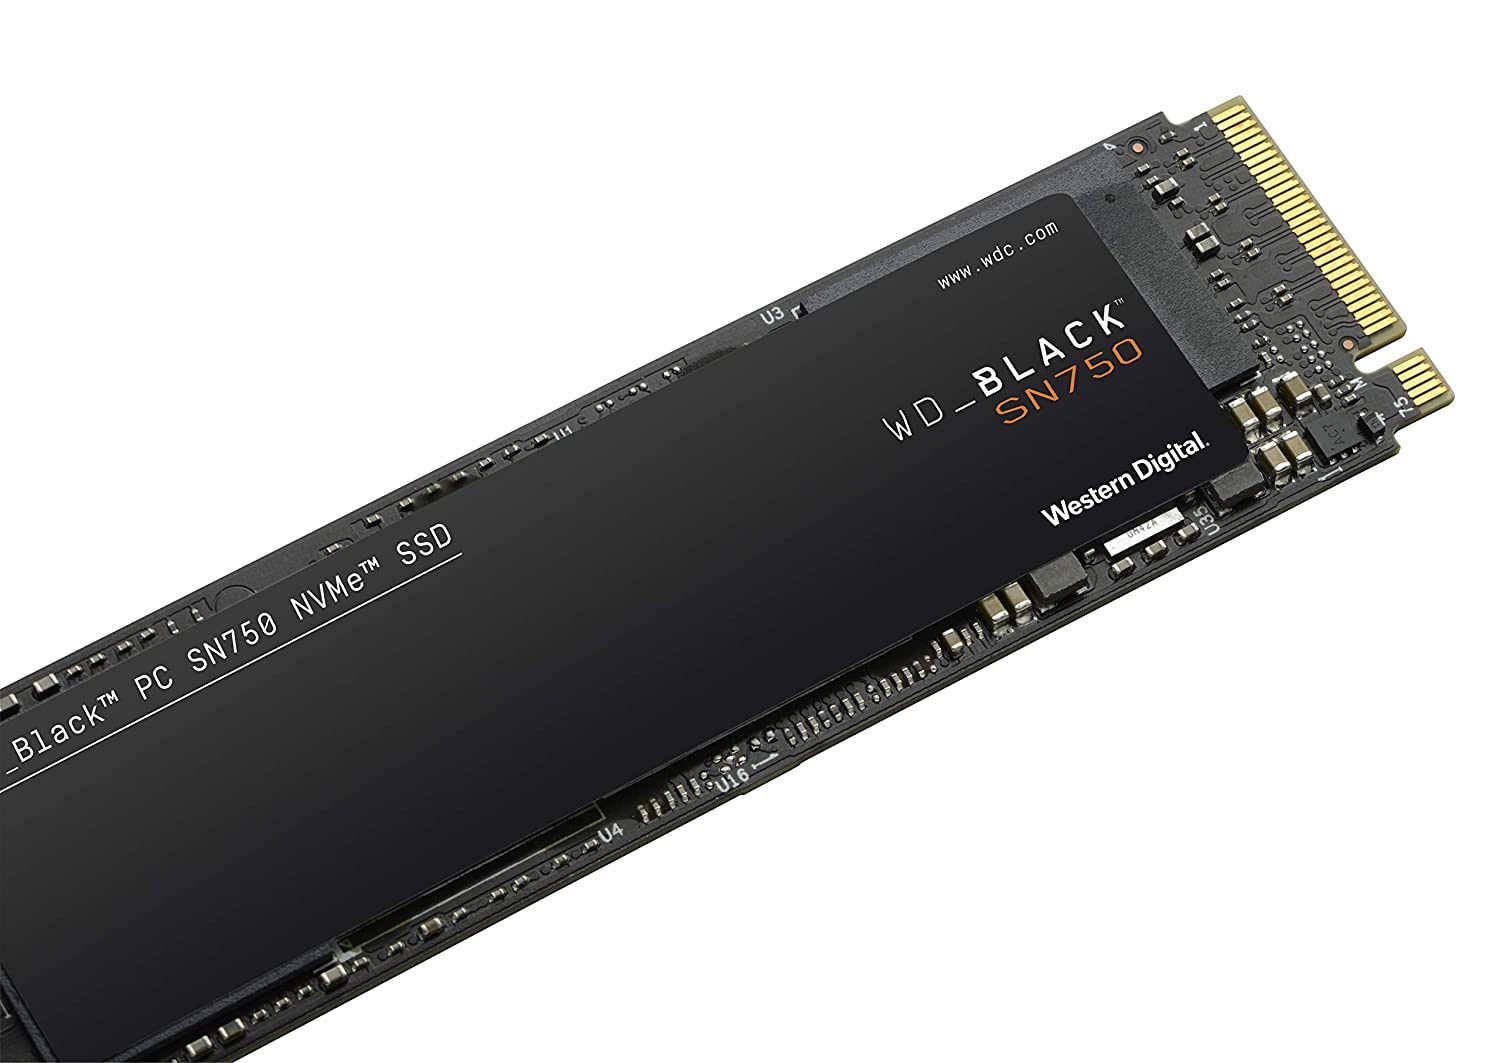 WD_Black SN750 250GB NVMe Internal Gaming SSD - Gen3 PCIe, M.2 2280, 3D NAND - WDS250G3X0C